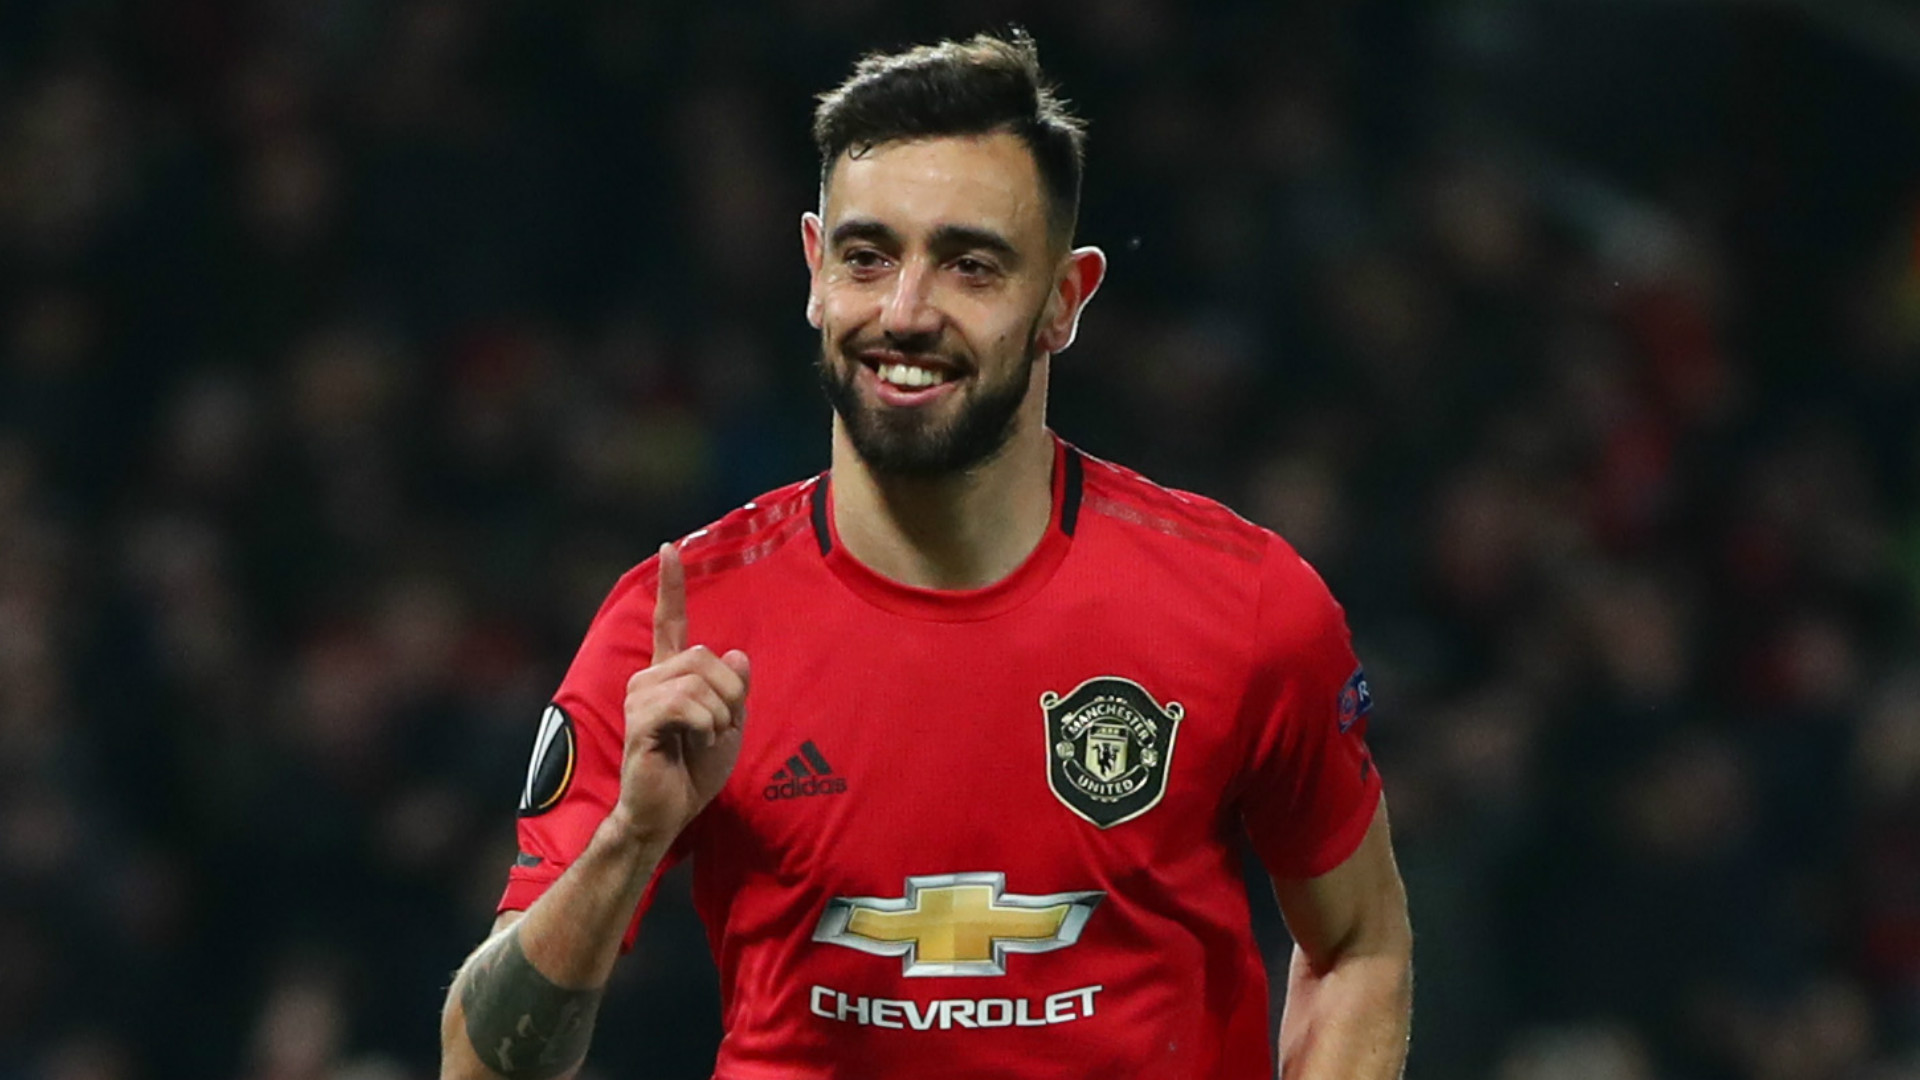 'What do I like about Fernandes? Everything!' - Scholes says Man Utd are now 'very watchable' thanks to Portuguese star